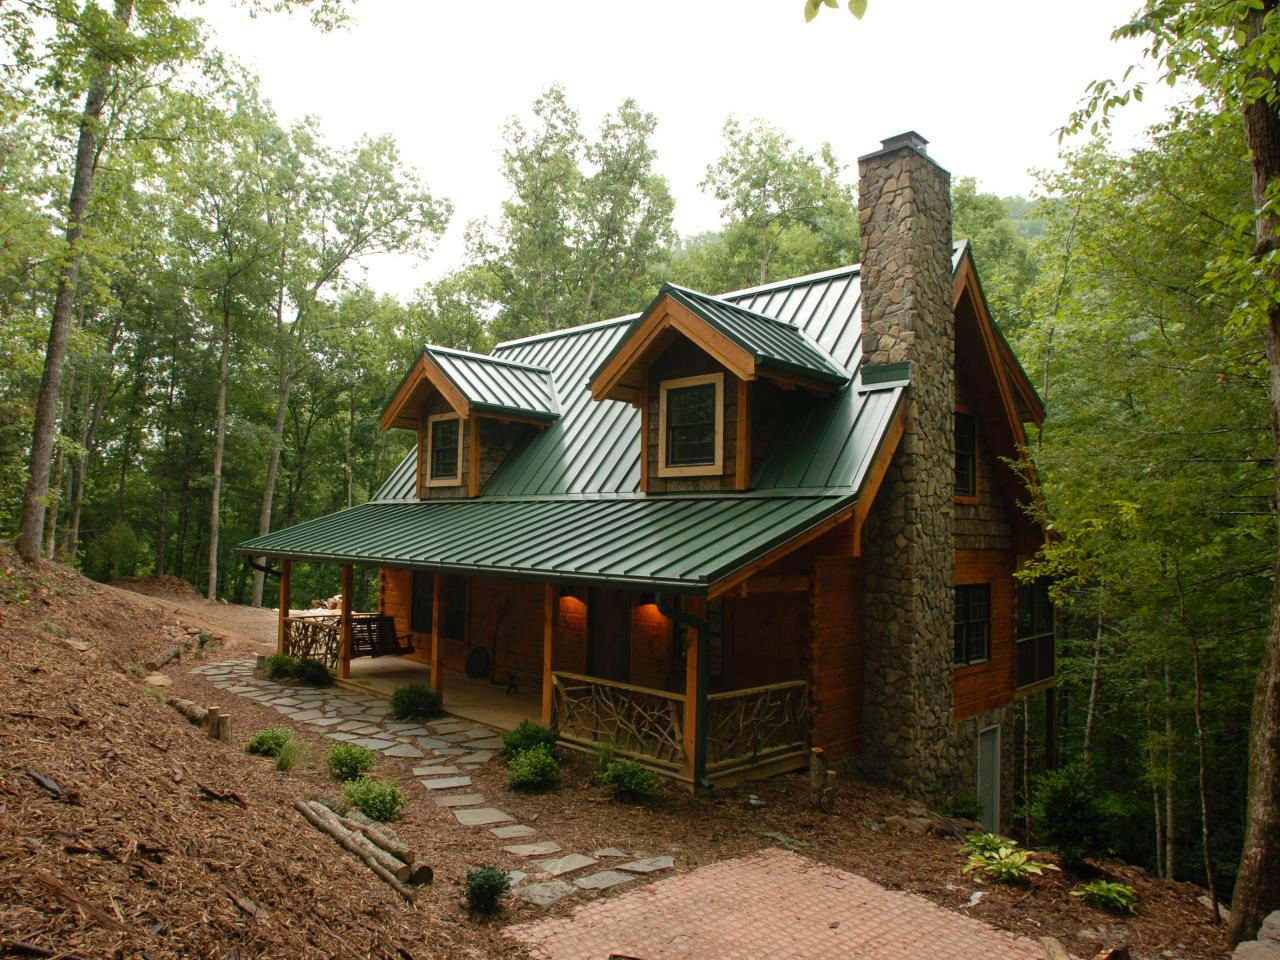 Diy Network Blog Cabin 2007 Diy Network Blog Cabin 10th